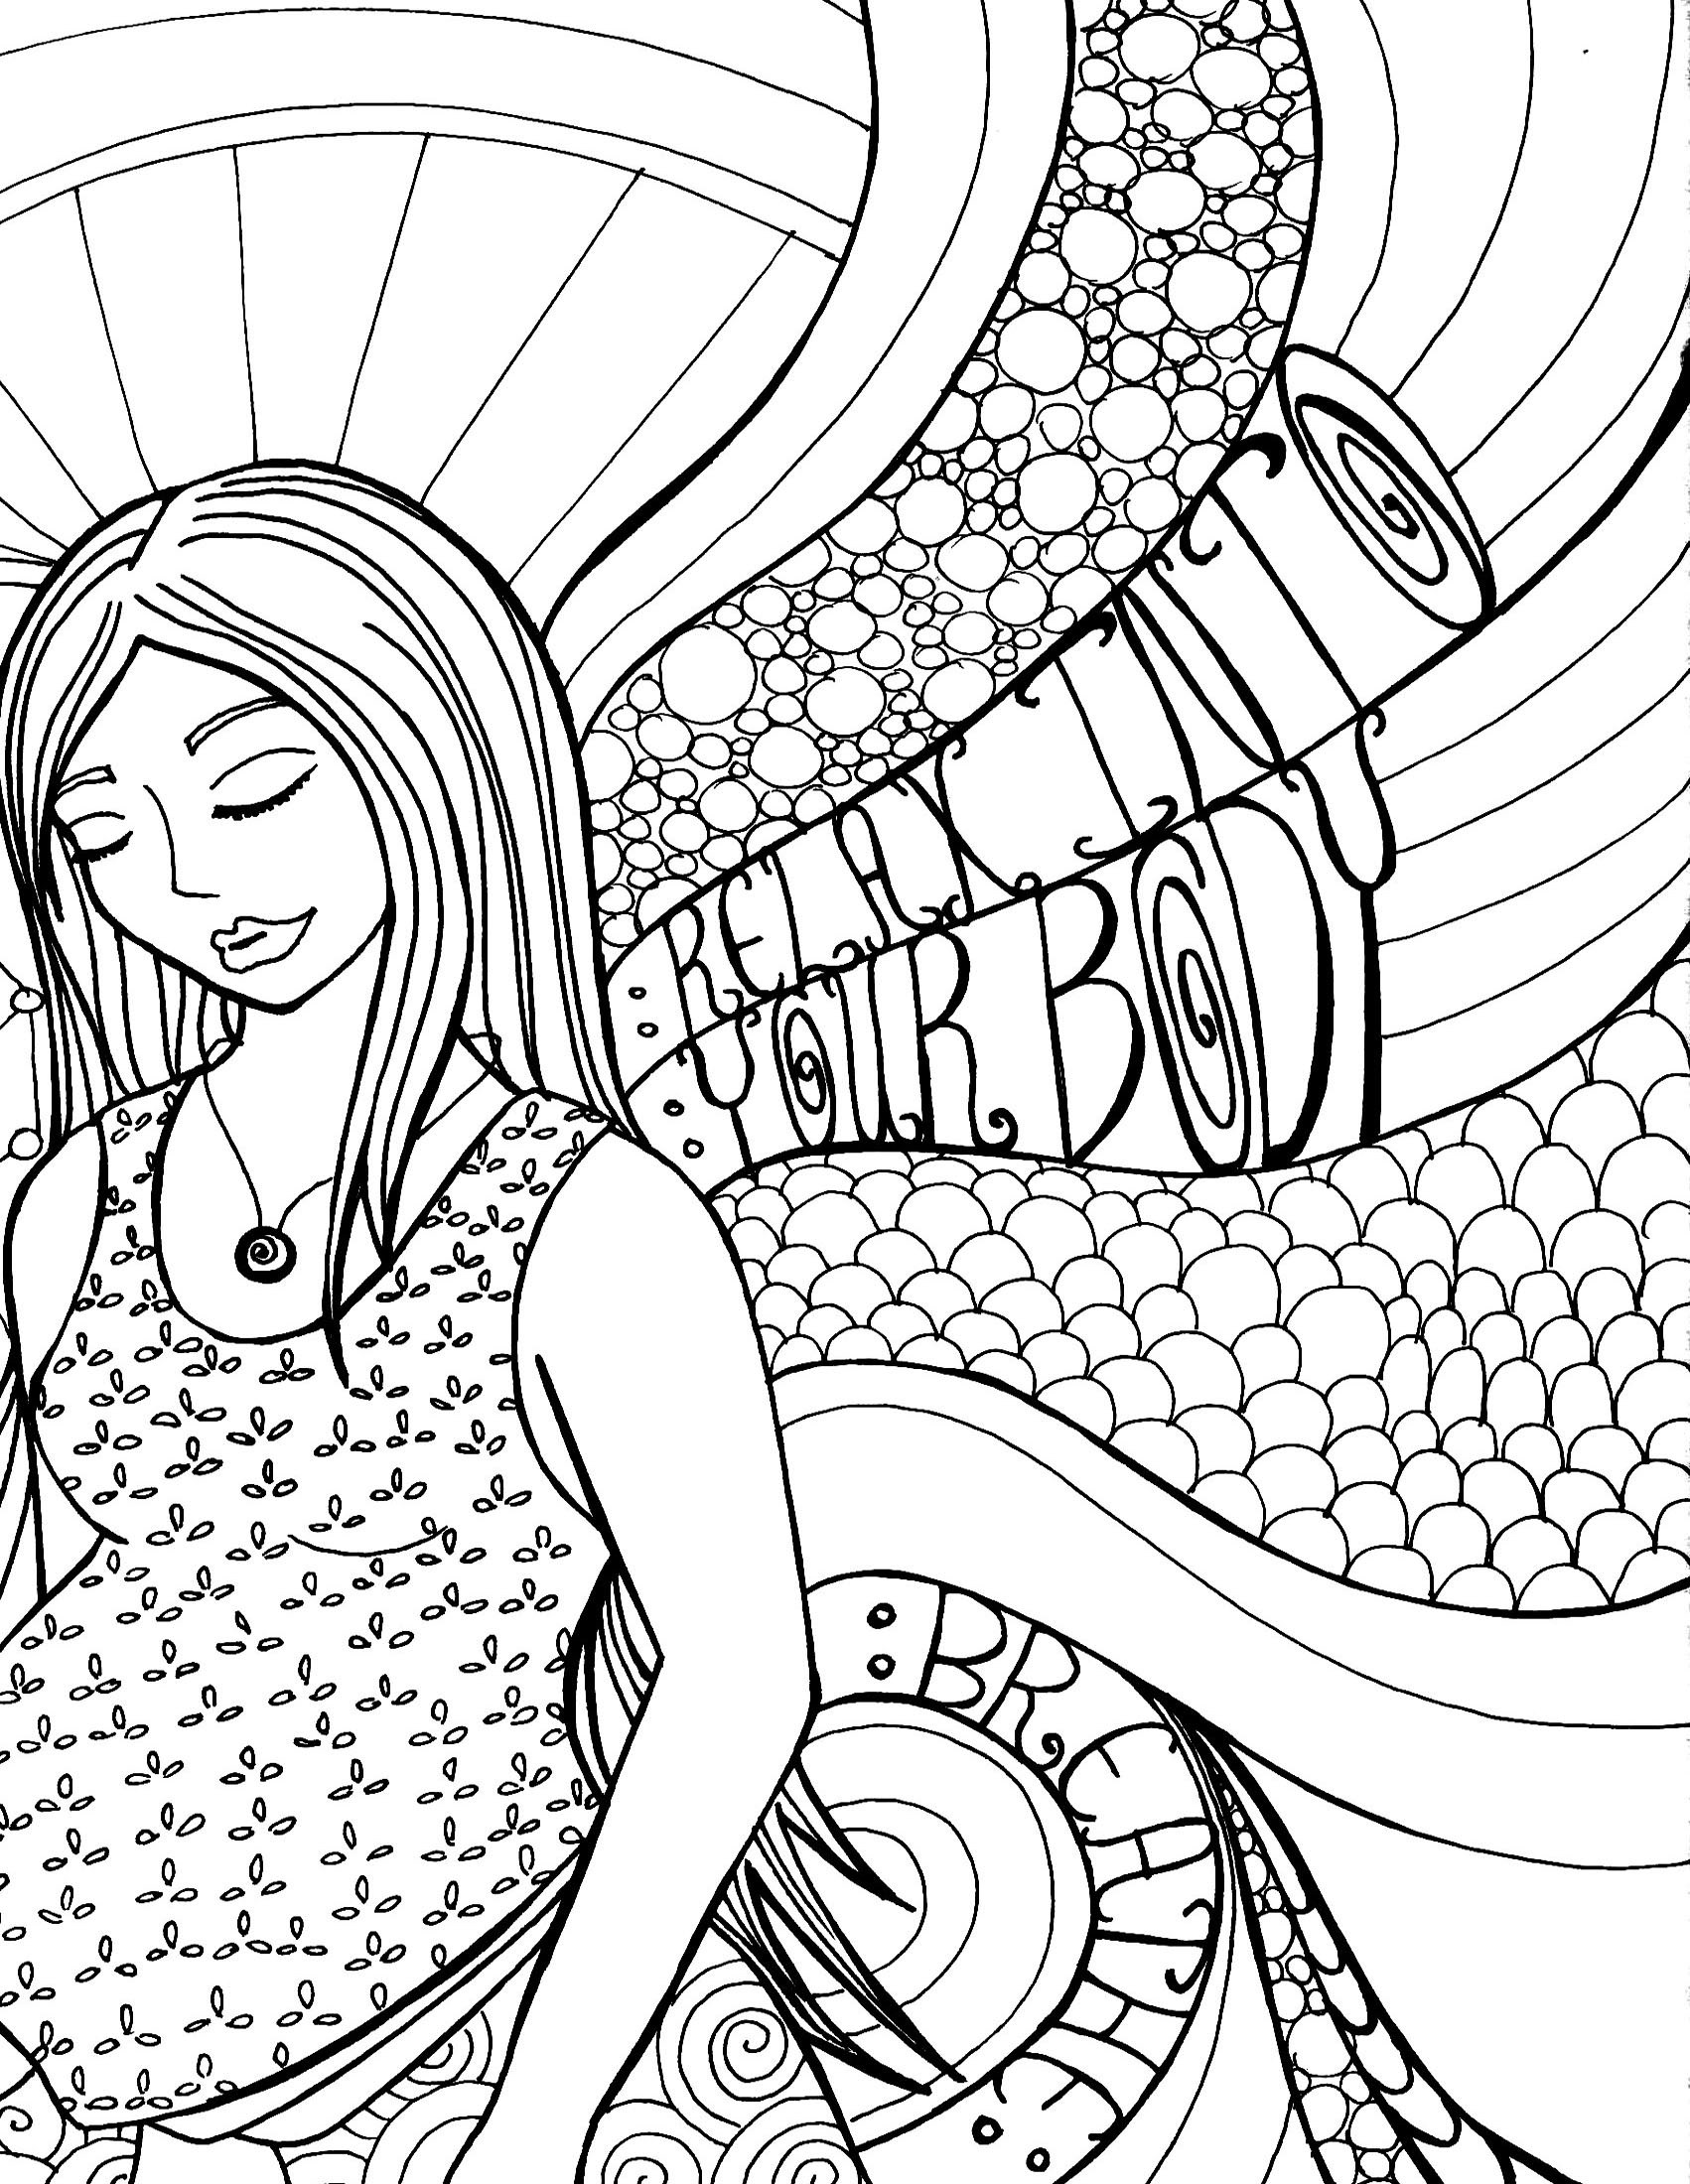 Pregnant Belly Coloring Pages